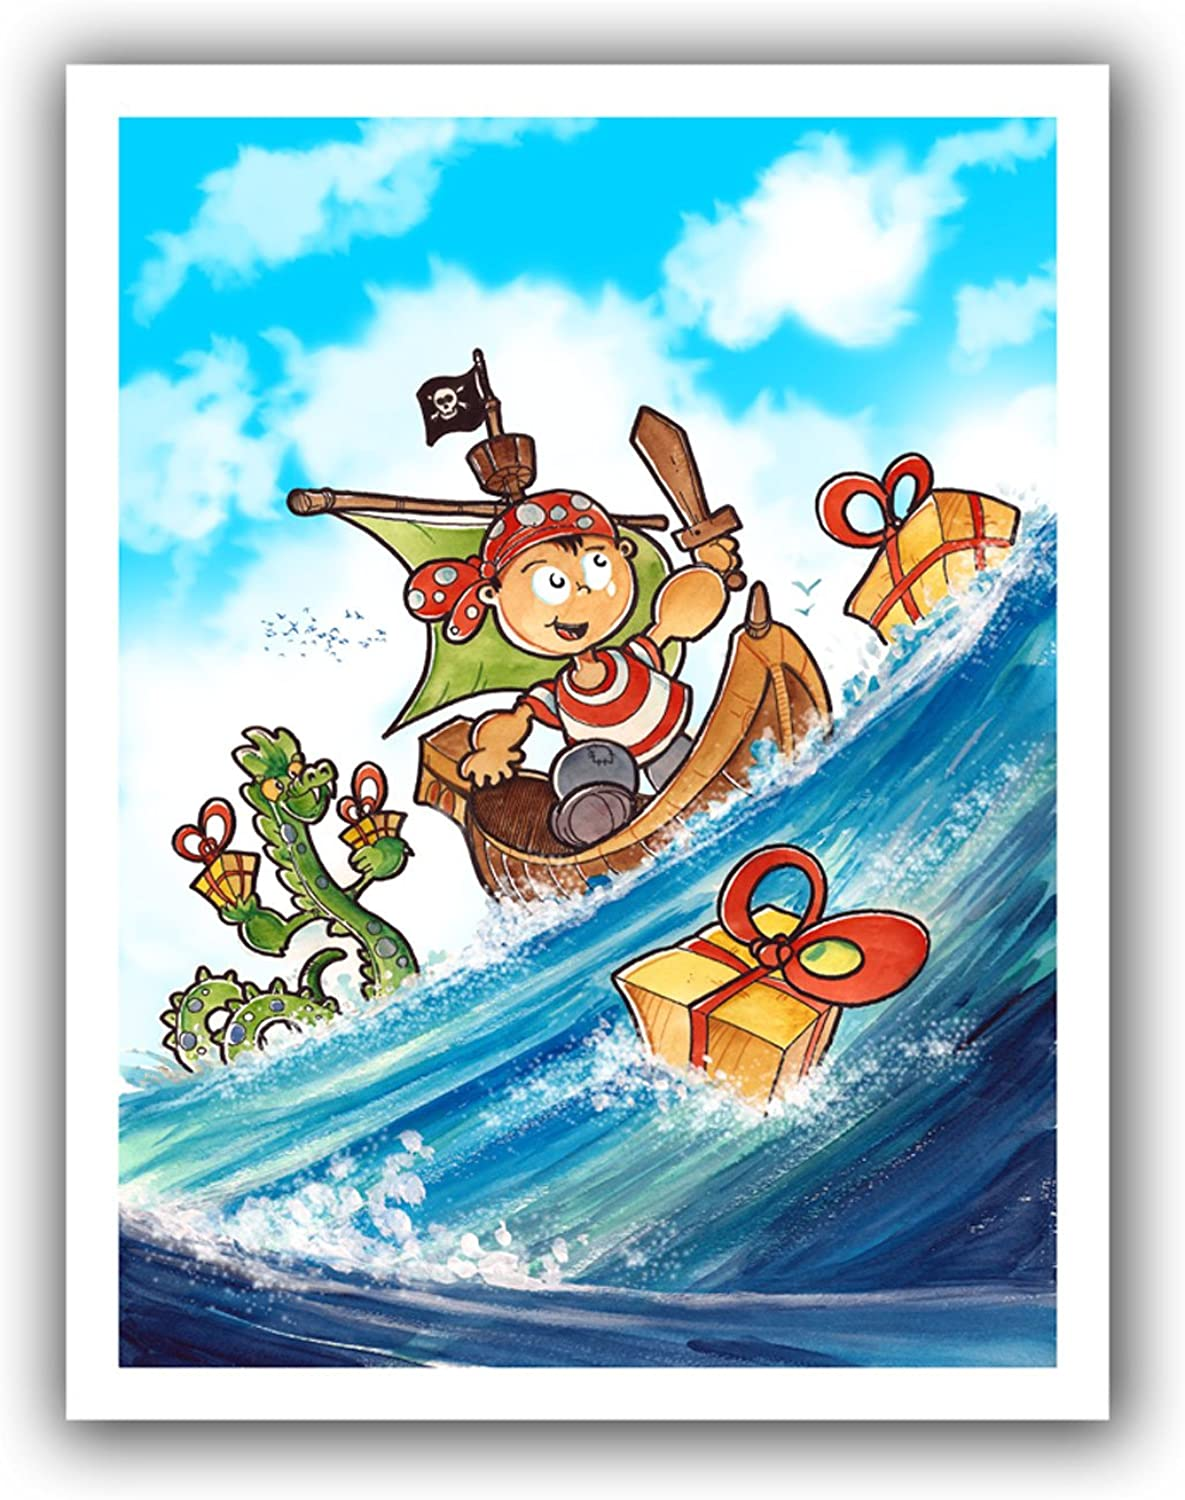 ArtWall Luis Peres Kid Pirate Unwrapped Canvas, 22 by 28Inch, Holds 18 by 24Inch Image